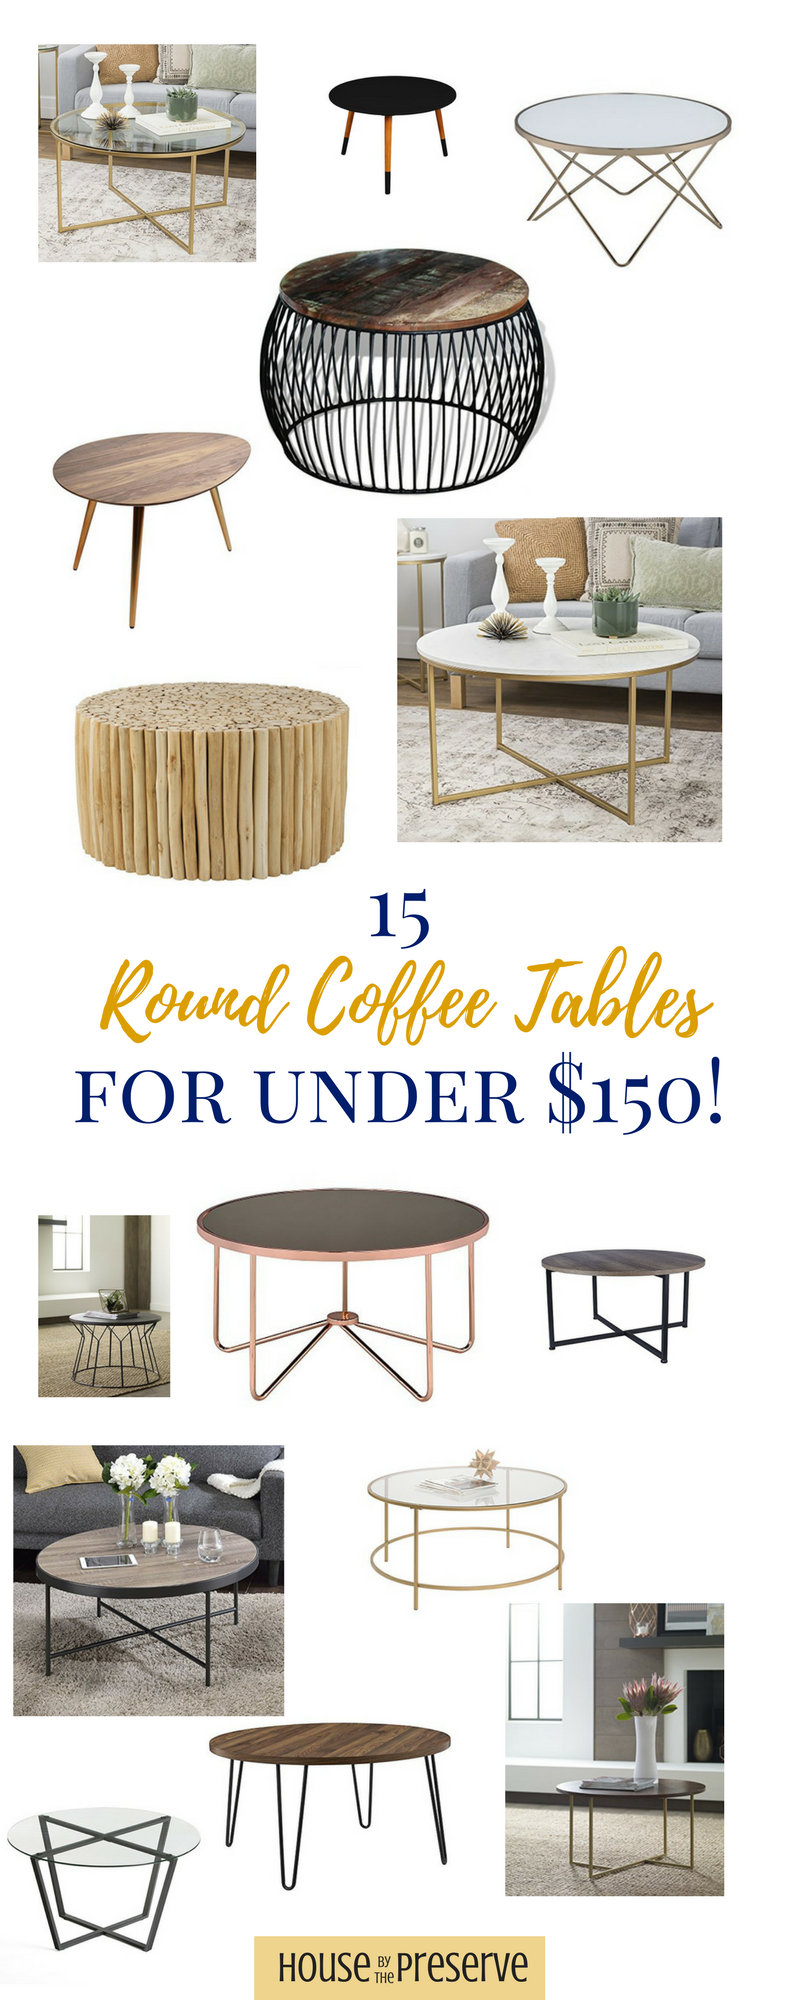 15 Round Coffee Tables for under $150.png